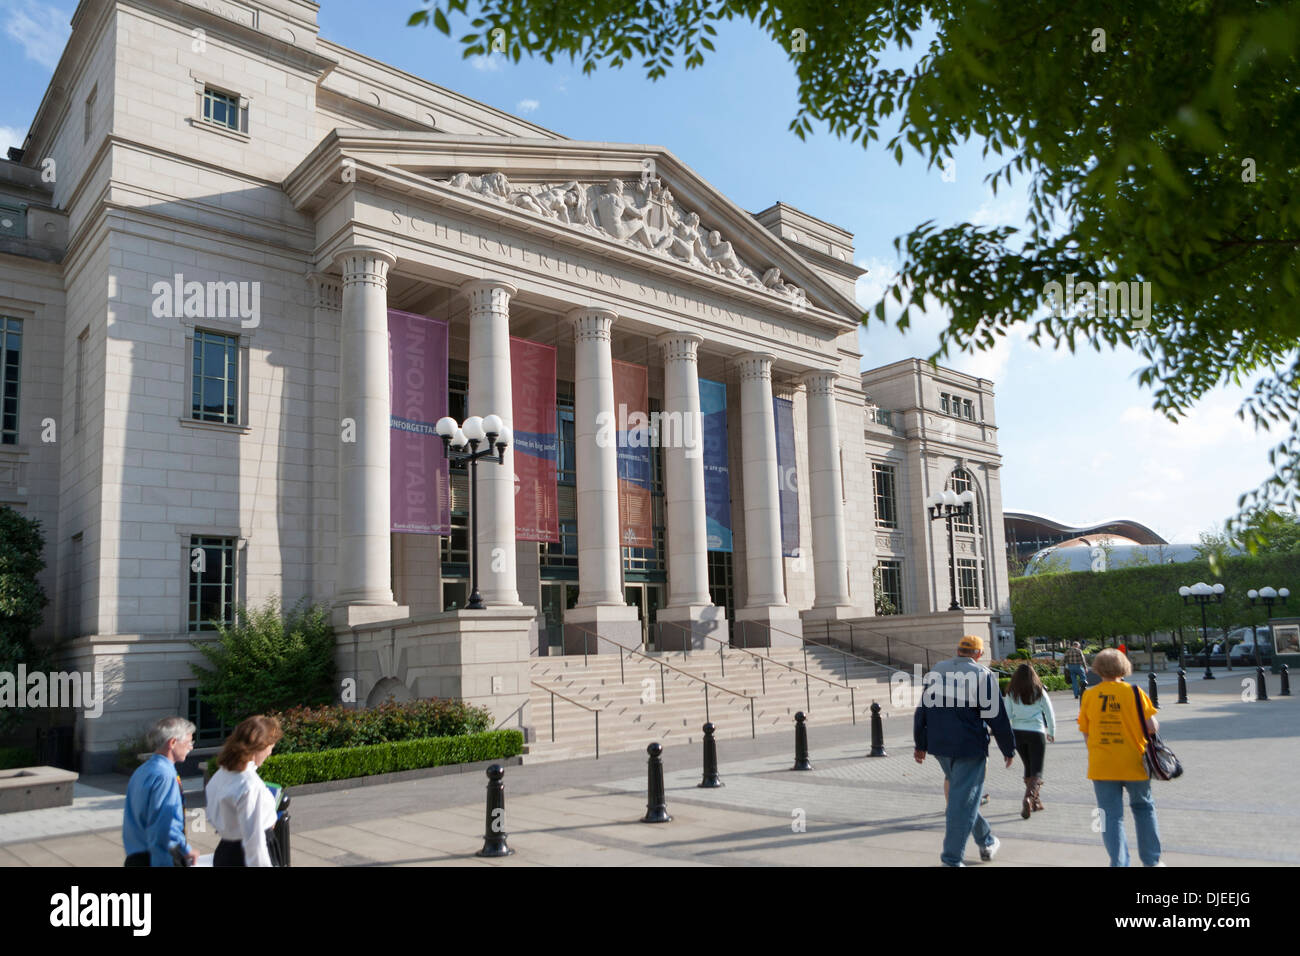 The exterior of the Schermerhorn Symphony Hall in downtown Nashville, Tennessee, USA - Stock Image